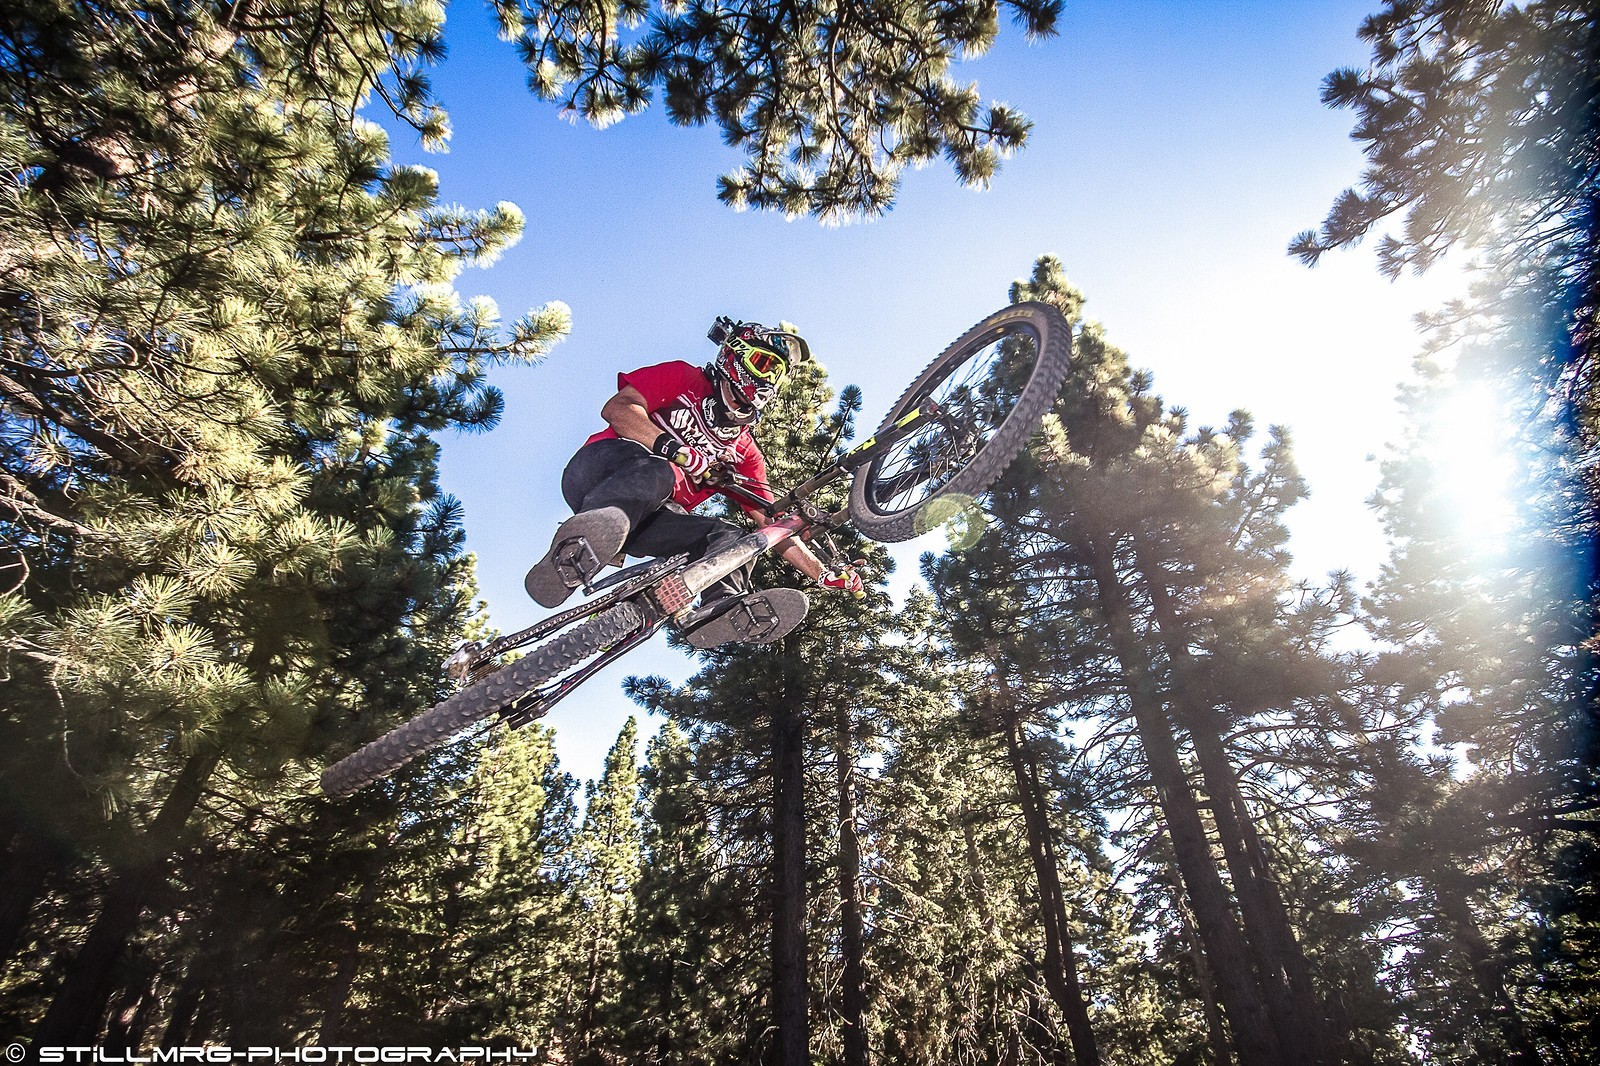 Flying as a bird - Stillmrg Photography - Mountain Biking Pictures - Vital MTB